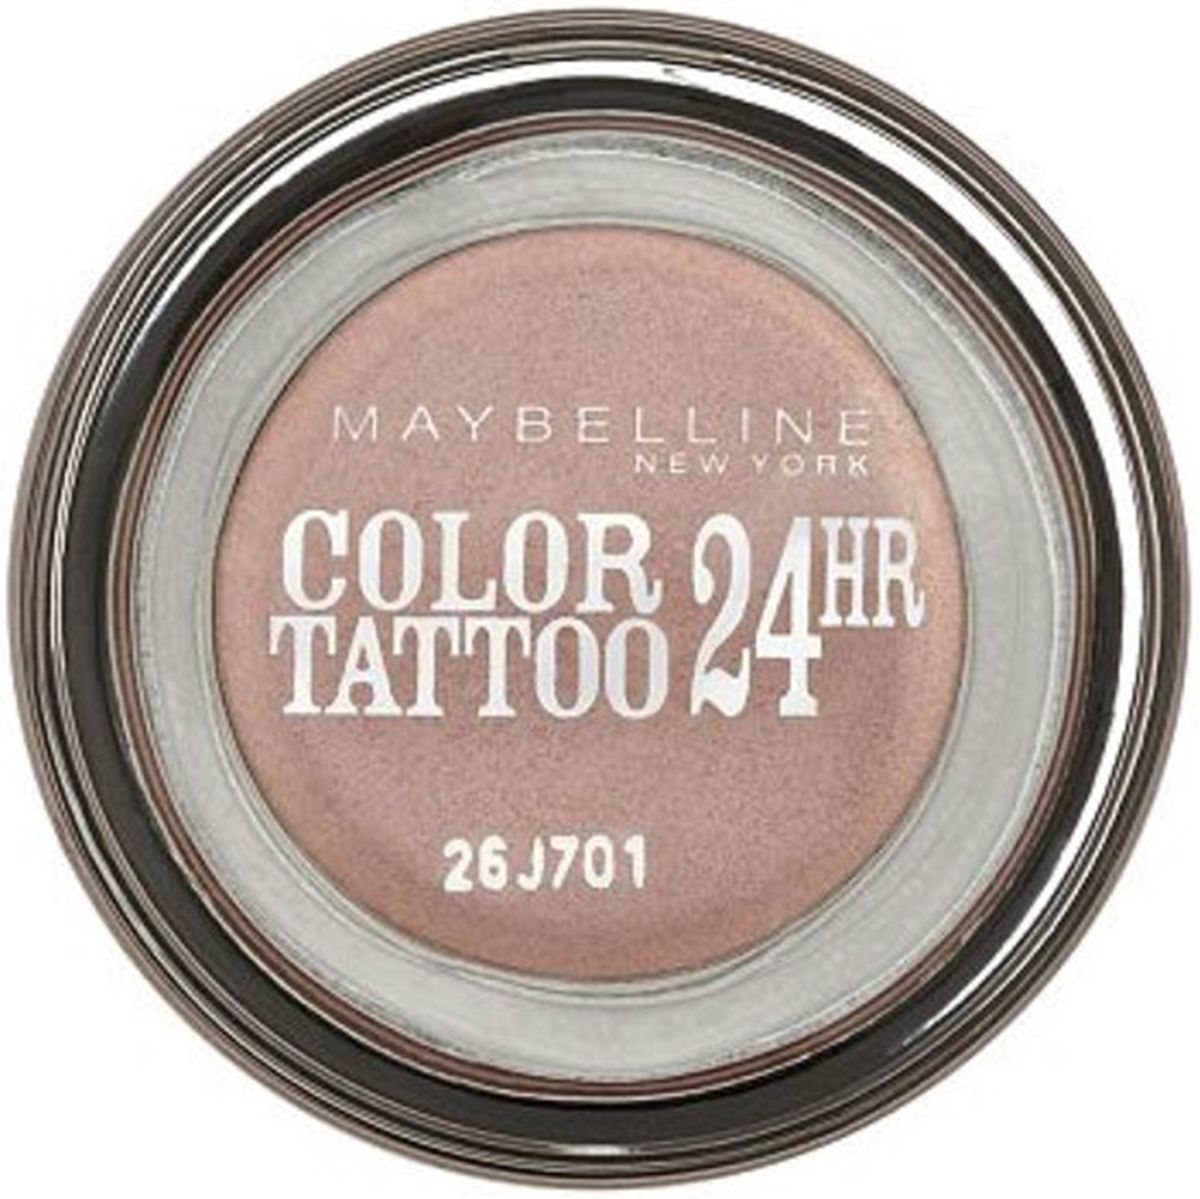 Maybelline New York Стойкие тени для век Color Tattoo 24 часа, оттенок 101 Морозное Дыхание, 4 мл boruit 18 xm l2 powerful led flashlight 5 mode portable tactical flash light waterproof aluminum camping hunting torch lanterna